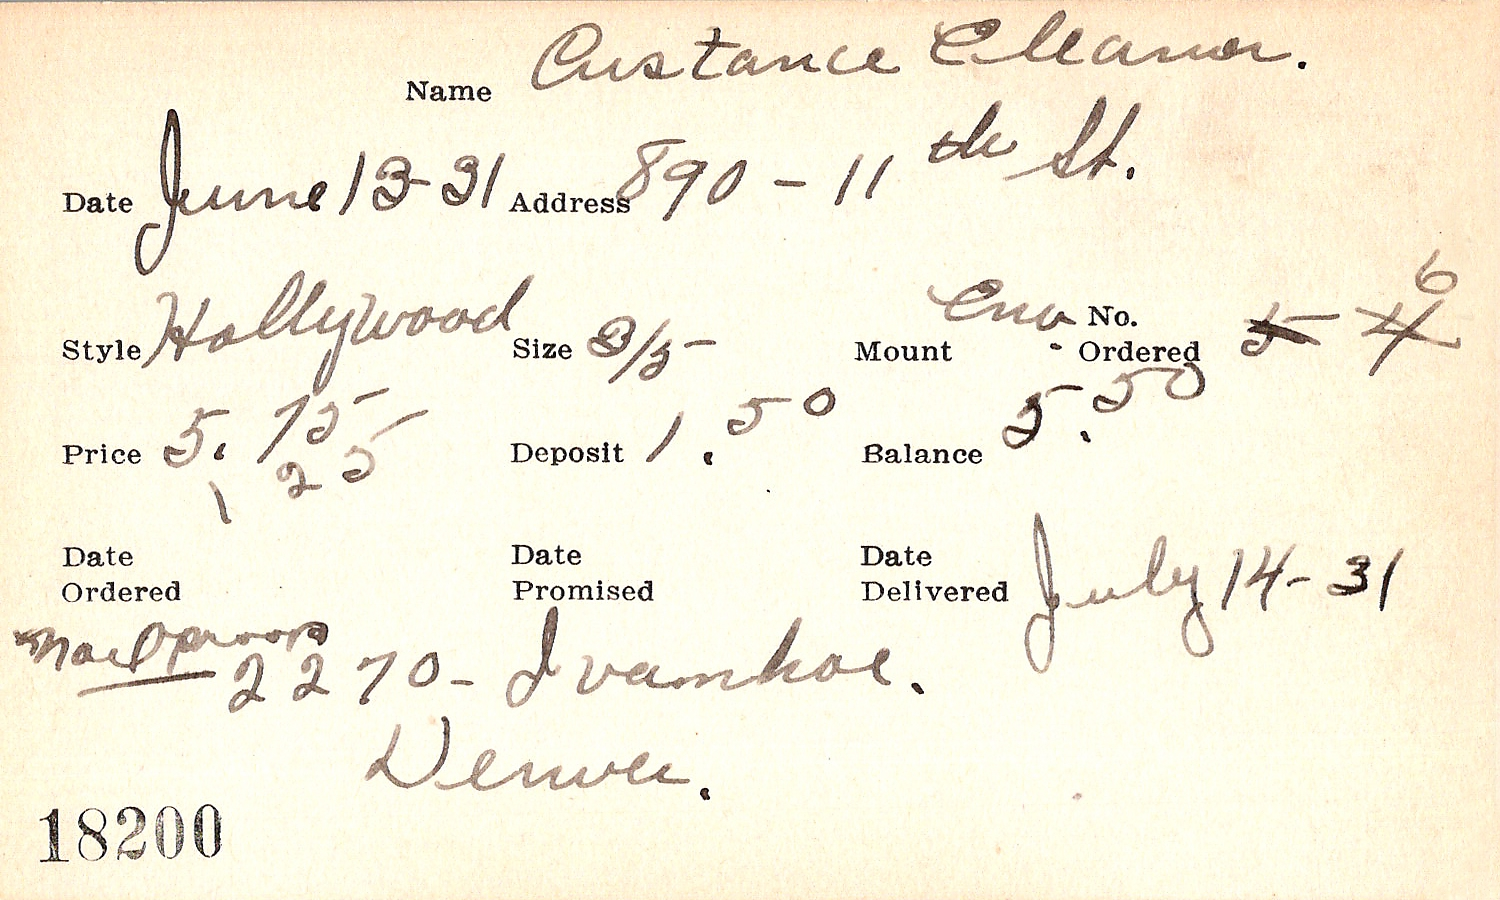 Index card for Eleanor Custance